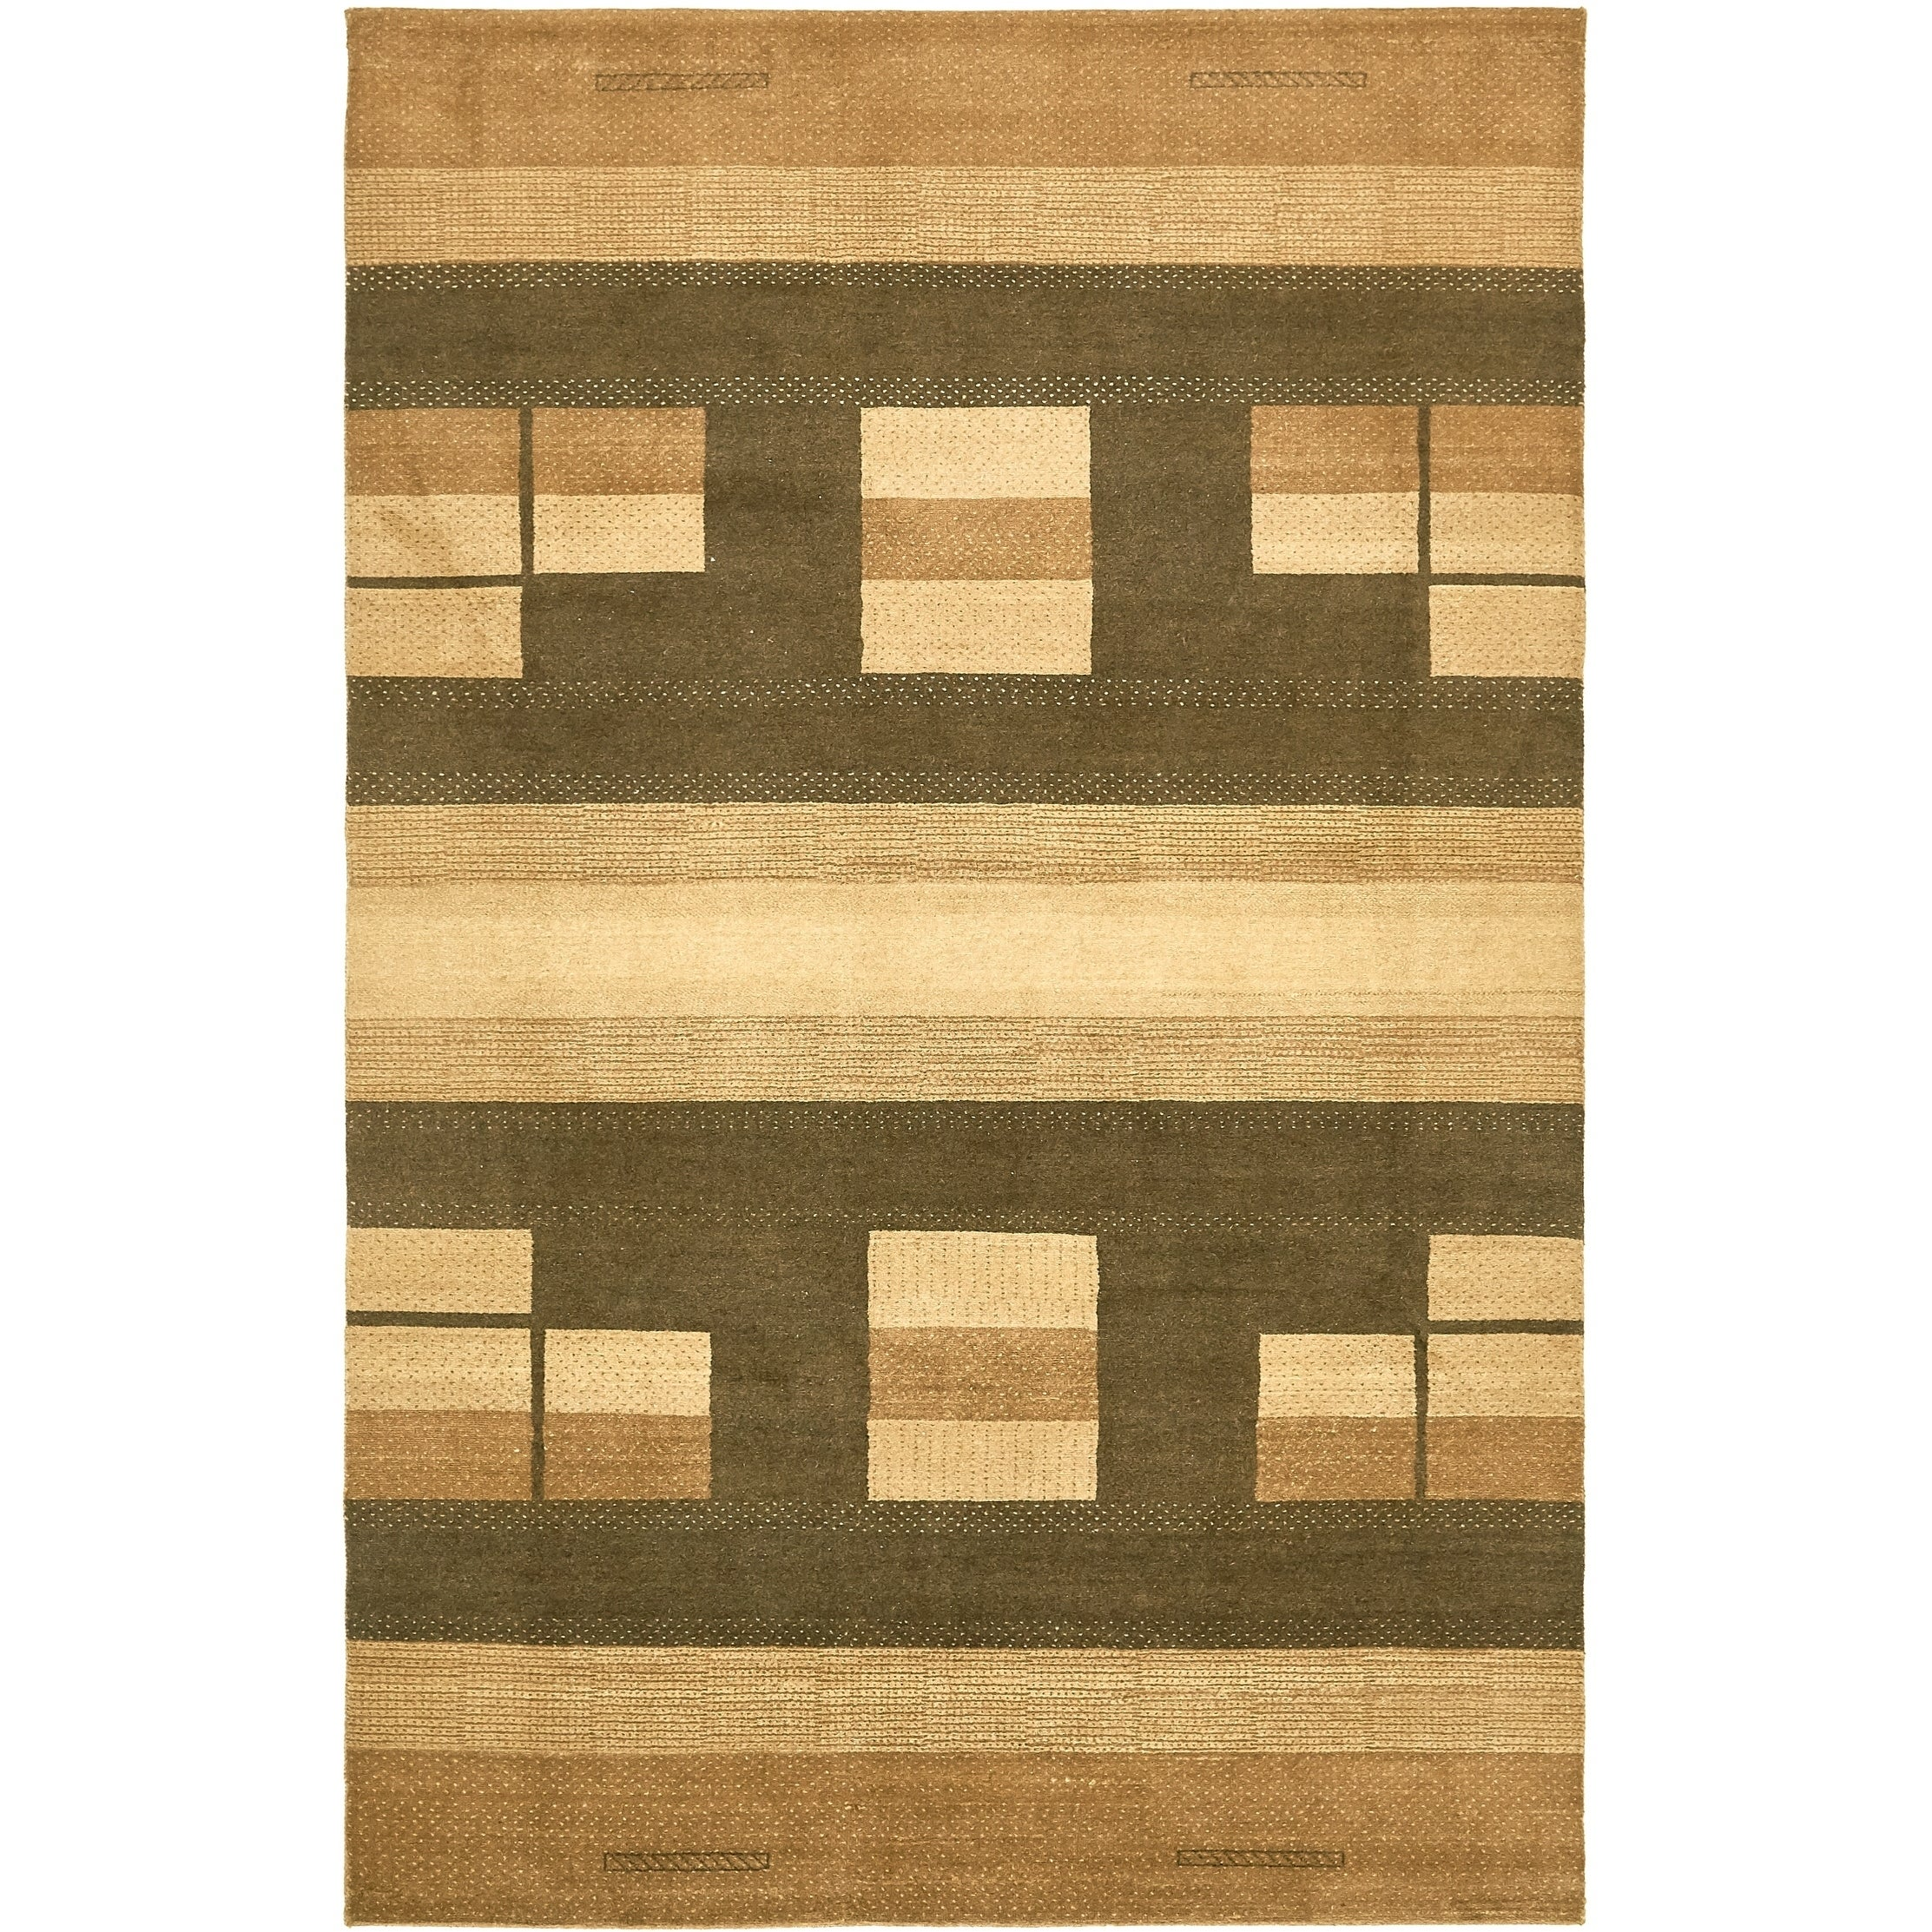 Hand Knotted Kashkuli Gabbeh Wool Area Rug - 6 2 x 9 7 (Brown - 6 2 x 9 7)